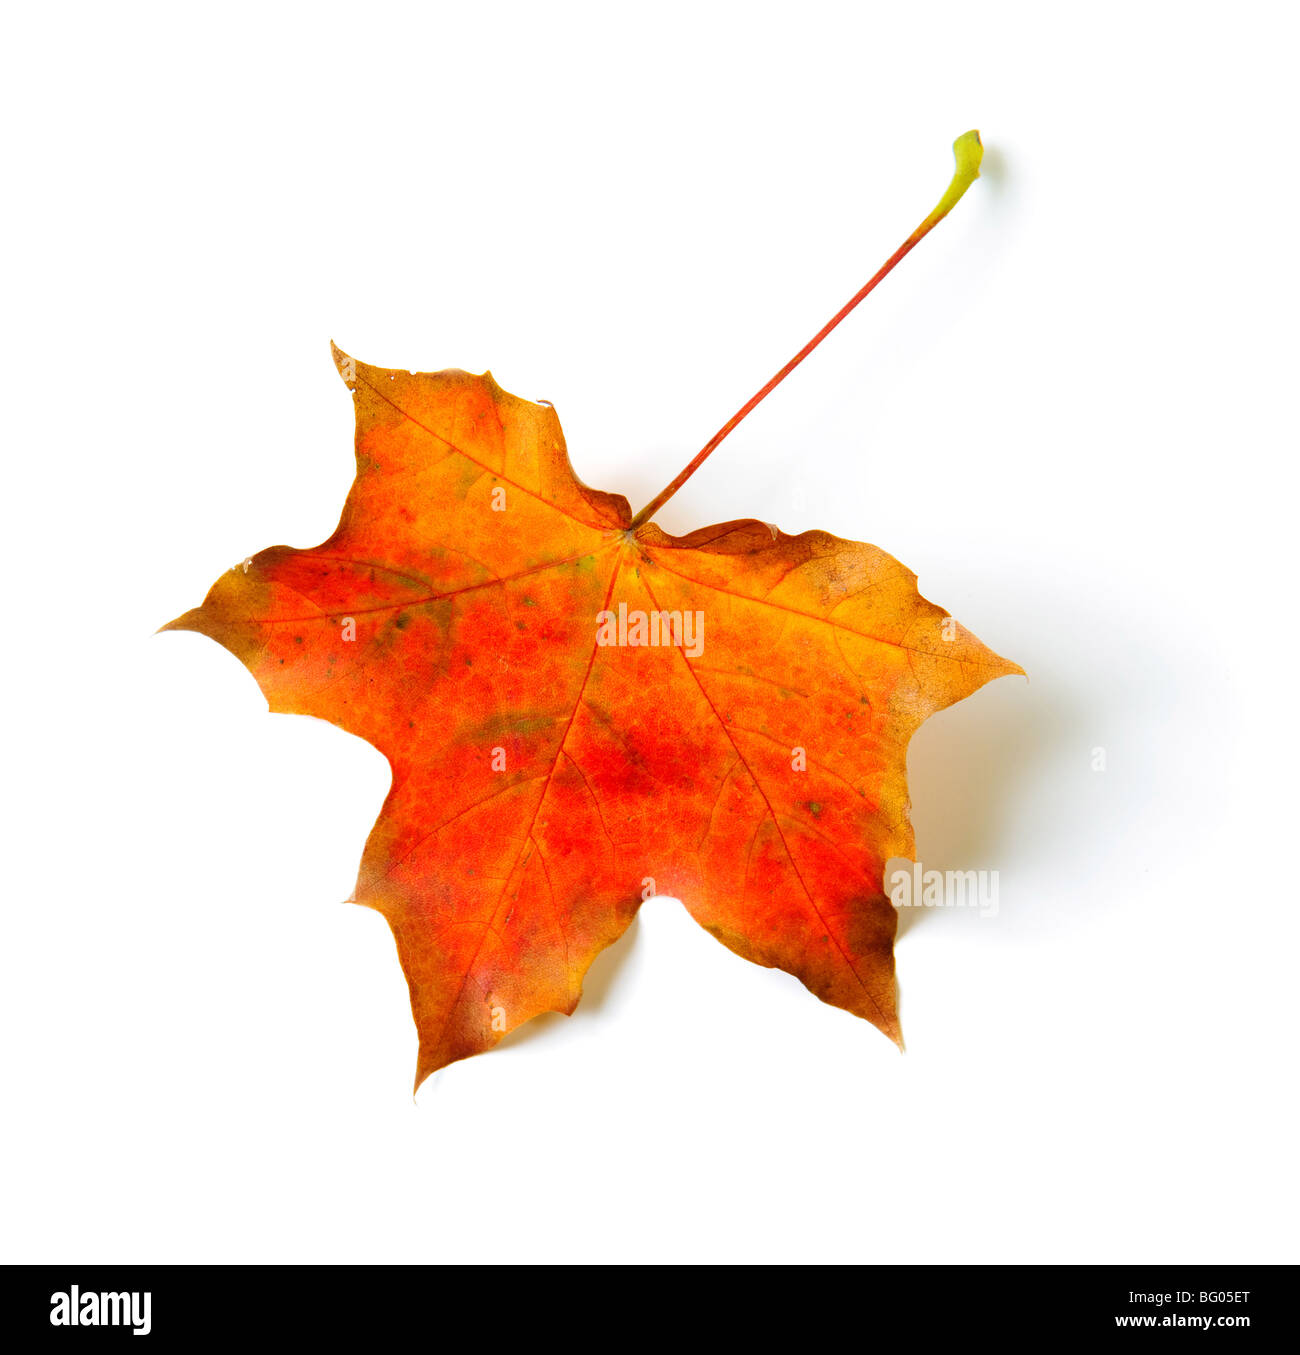 One autumn colored maple leaf isolated on white - Stock Image